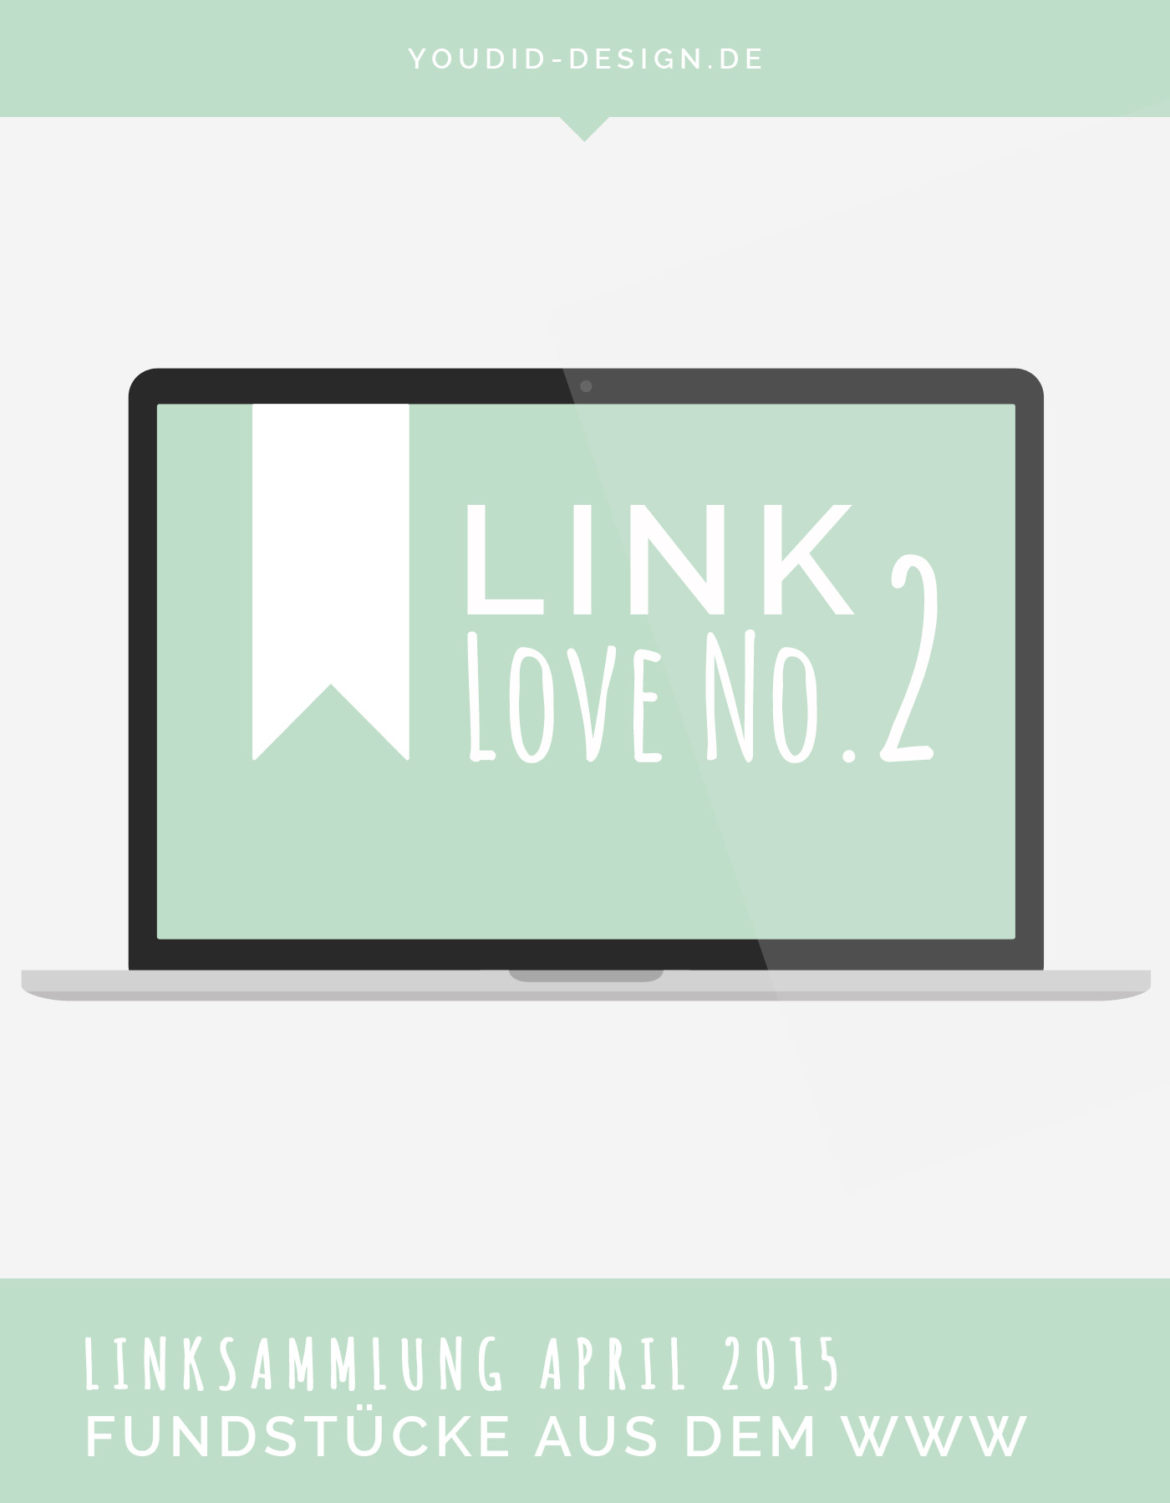 Linksammlung Linklove No 2 April 2015 | www.youdid-design.de